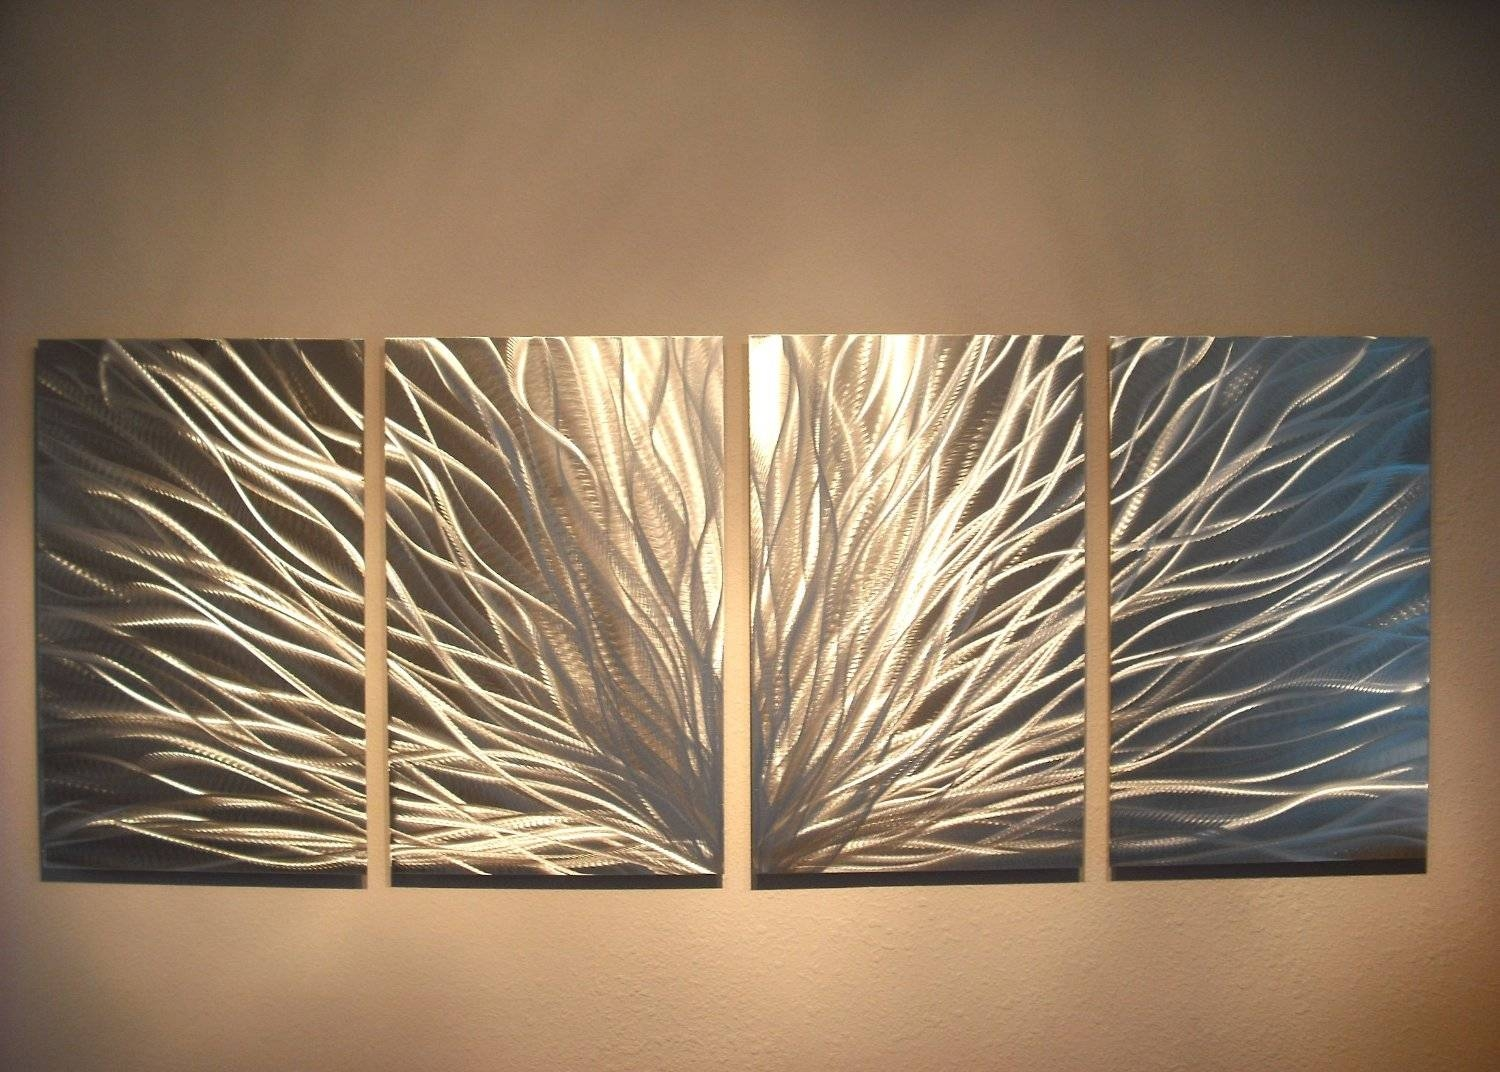 Wall Art Designs: Modern Sculpture Cheap Contemporary Wall Art Inside Latest Cheap Wall Art And Decor (View 18 of 20)